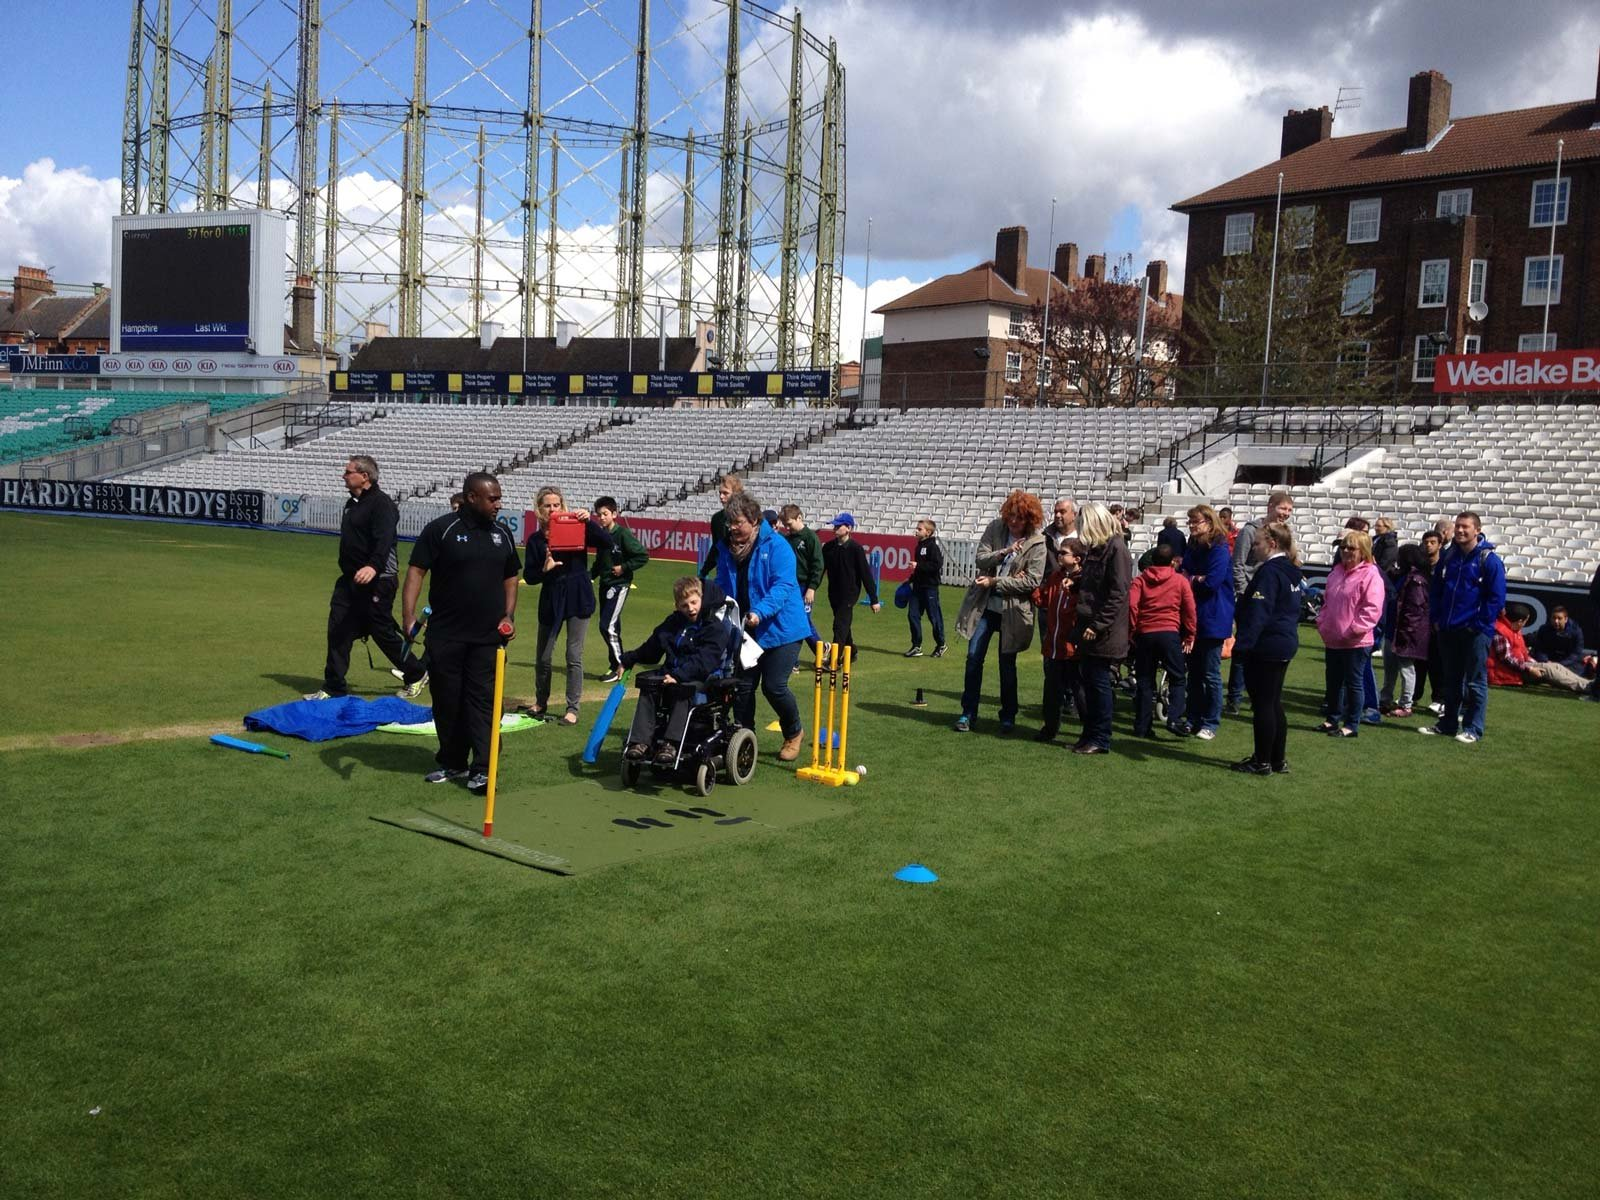 The cricket coaching mat is used at the Brit Oval for a disability day